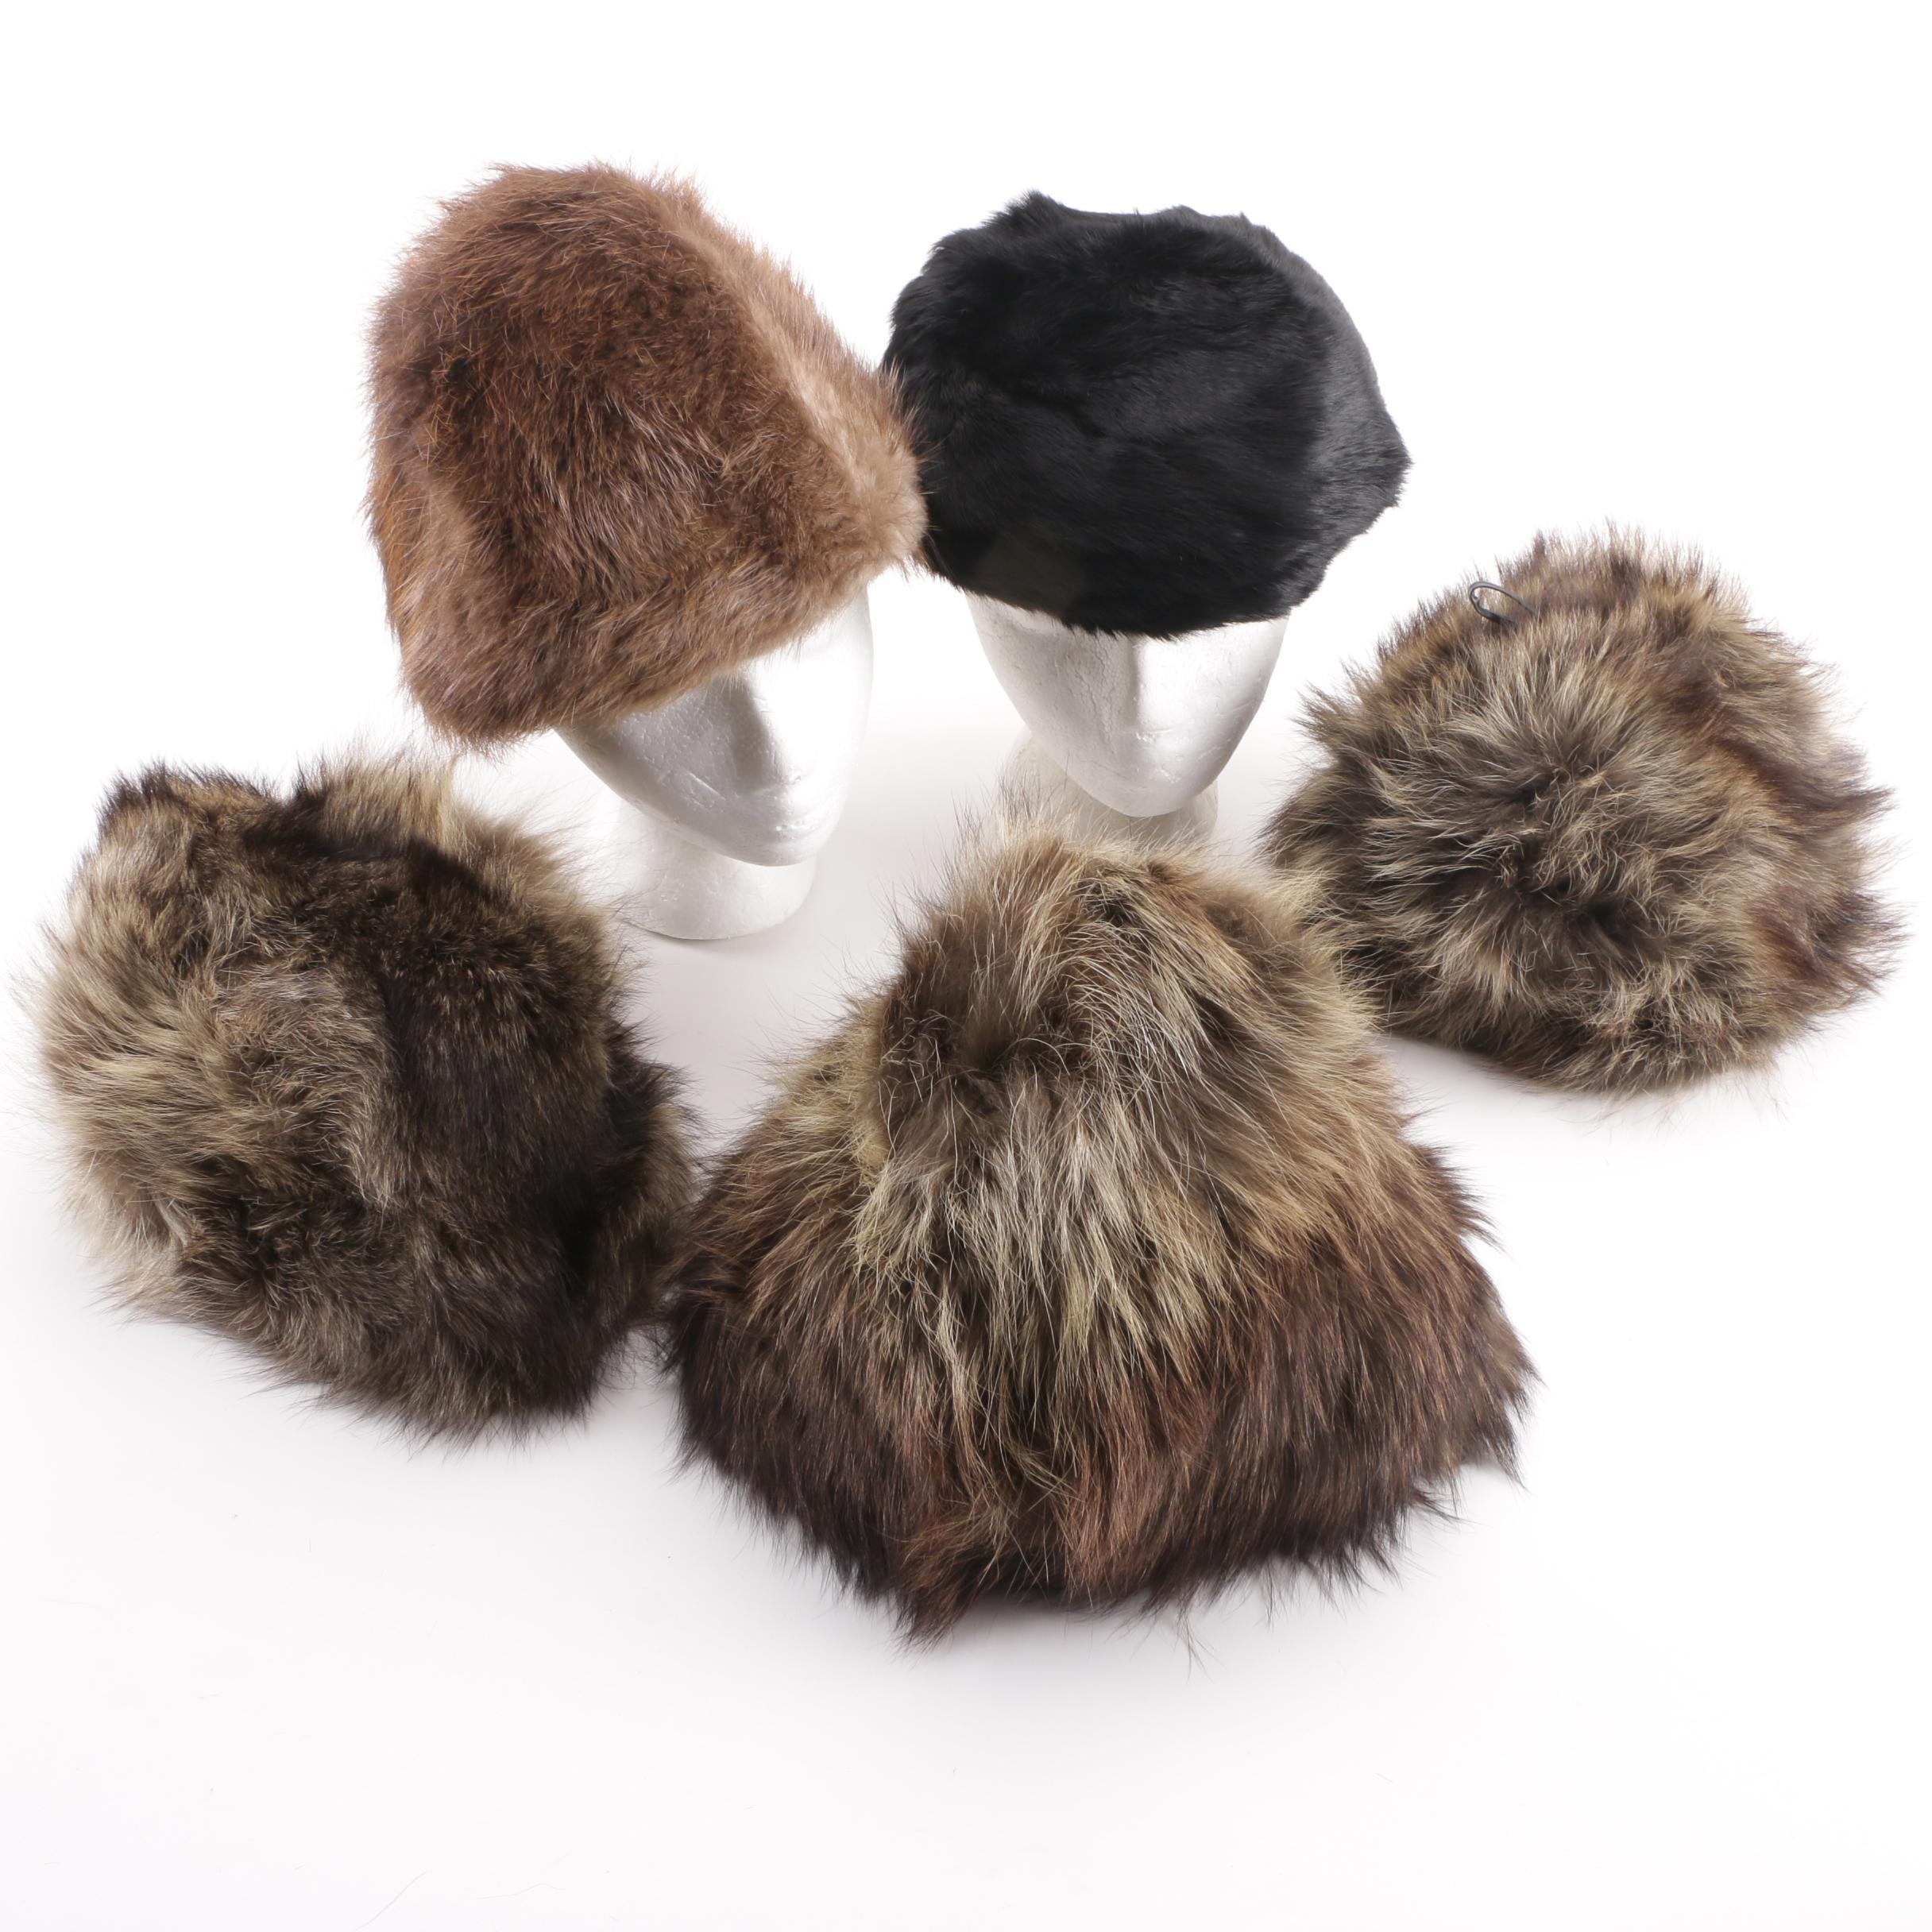 Raccoon Fur, Rabbit Fur and Dyed Beaver Fur Hats, 1960s